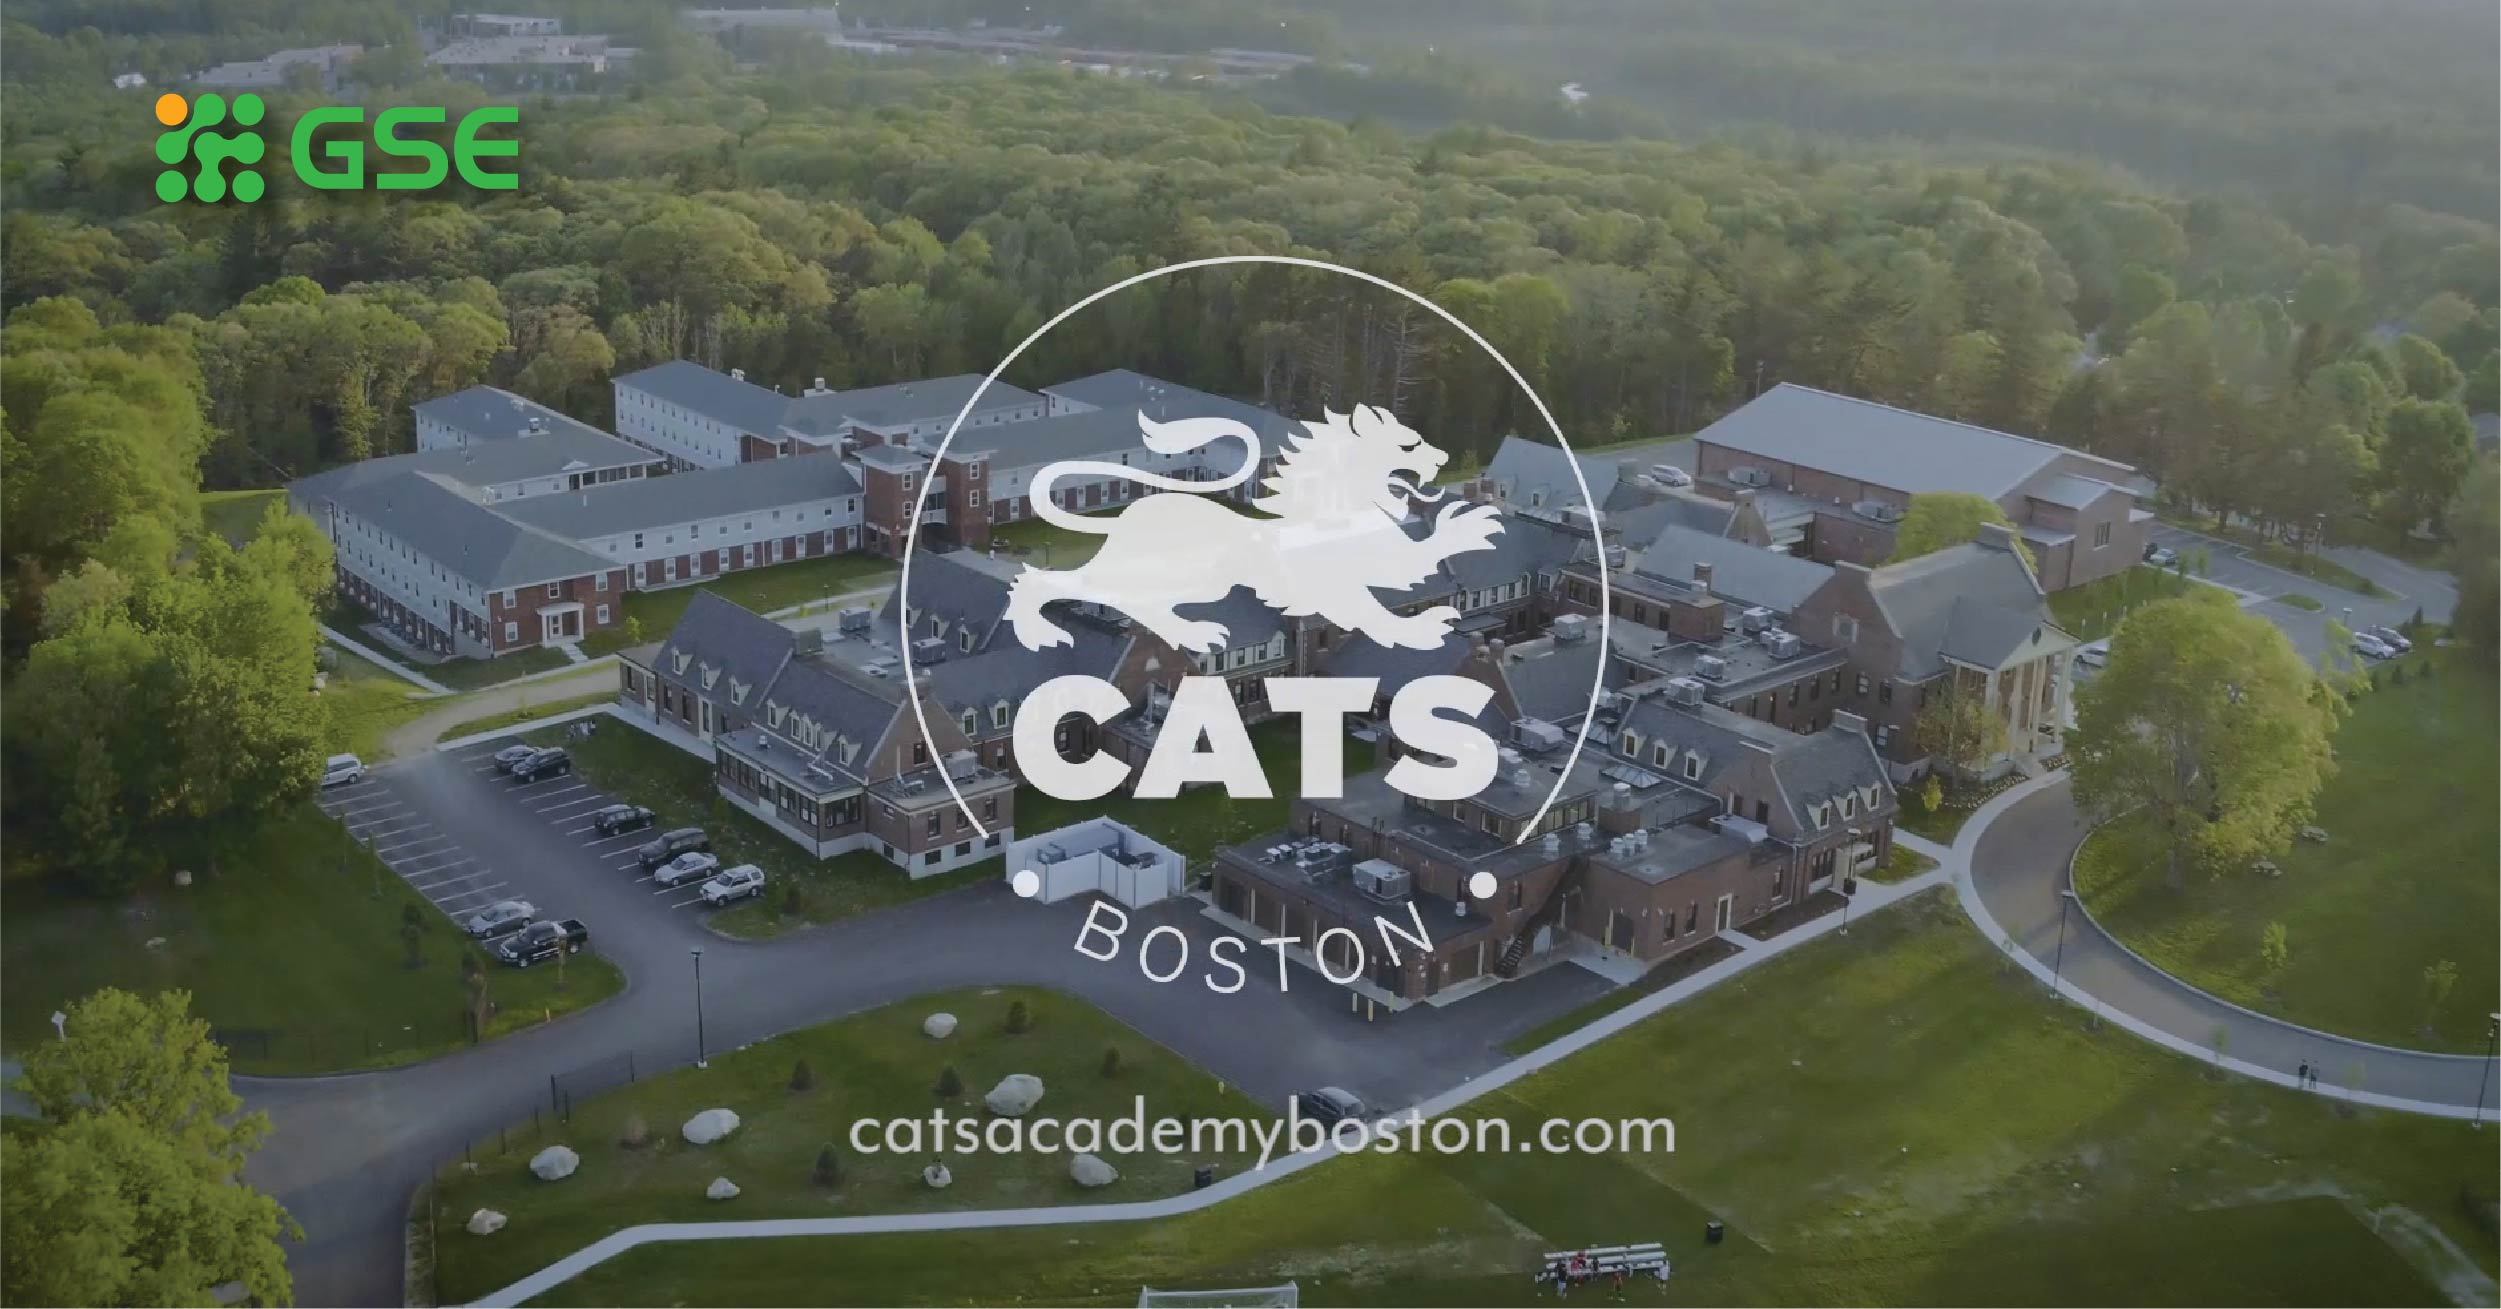 CATS academy boston 03 - CATS Academy Boston khai giảng lớp học face-to-face kỳ tháng 9/2020